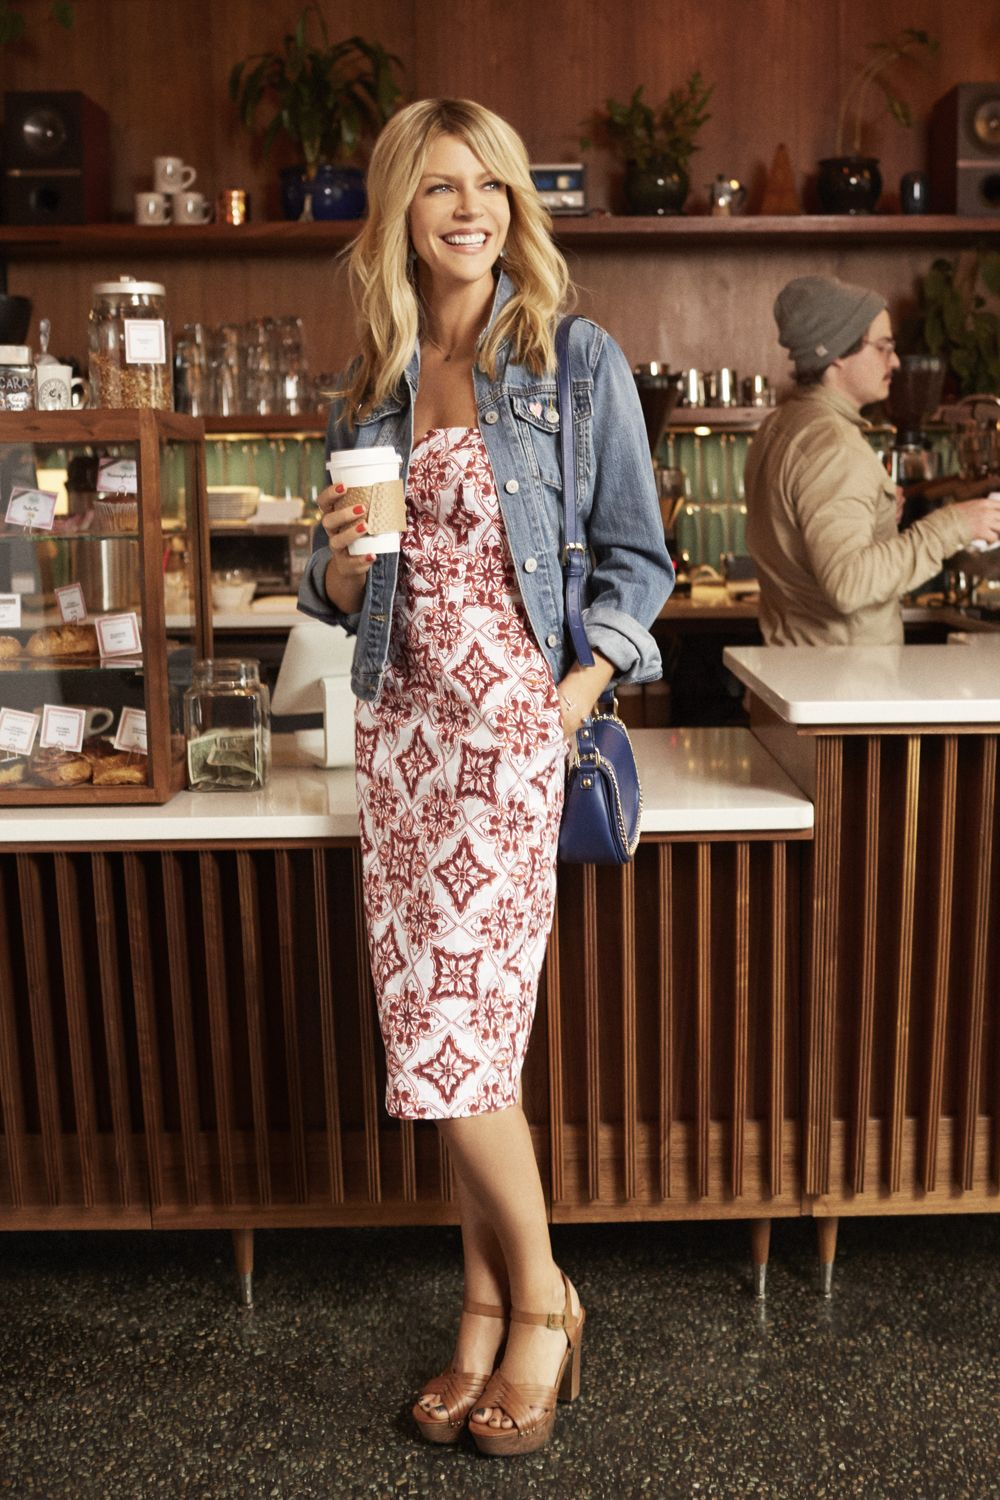 """<p>The exotic vacay print, usually reserved for flowy cover-ups, is more polished this season in flattering, curve-skimming silhouettes. </p><p><em><strong>Jacket</strong>, $70, <a href=""""http://gap.com"""" target=""""_blank"""">gap.com</a>. <strong>Dress</strong>, Eva Mendes Collection, $85, <a href=""""http://nyandcompany.com"""" target=""""_blank"""">nyandcompany.com</a>. <strong>Necklace</strong>, $70, <a href=""""http://threesistersjewelrydesign.com"""" target=""""_blank"""">threesistersjewelrydesign.com</a> (15% off sitewide for </em>GH<em> readers with code GH0715). <strong>Purse</strong>, French Connection, $88, <a href=""""http://macys.com"""" target=""""_blank"""">macys.com</a>. <strong>Bangle</strong>, $38, <a href=""""http://marlynschiff.com"""" target=""""_blank"""">marlynschiff.com</a>. <strong>Heels</strong>, Indigo Rd., $40, <a href=""""http://dsw.com"""" target=""""_blank"""">dsw.com</a>.<br><br> </em> </p><p><em><strong>On location:</strong> <a href=""""http://casestudycoffee.com/"""" target=""""_blank"""">Case Study Coffee</a></em> </p><p><em>Get your coffee fix — from a cappuccino to a cortado — at this cozy and hip roaster.</em></p>"""